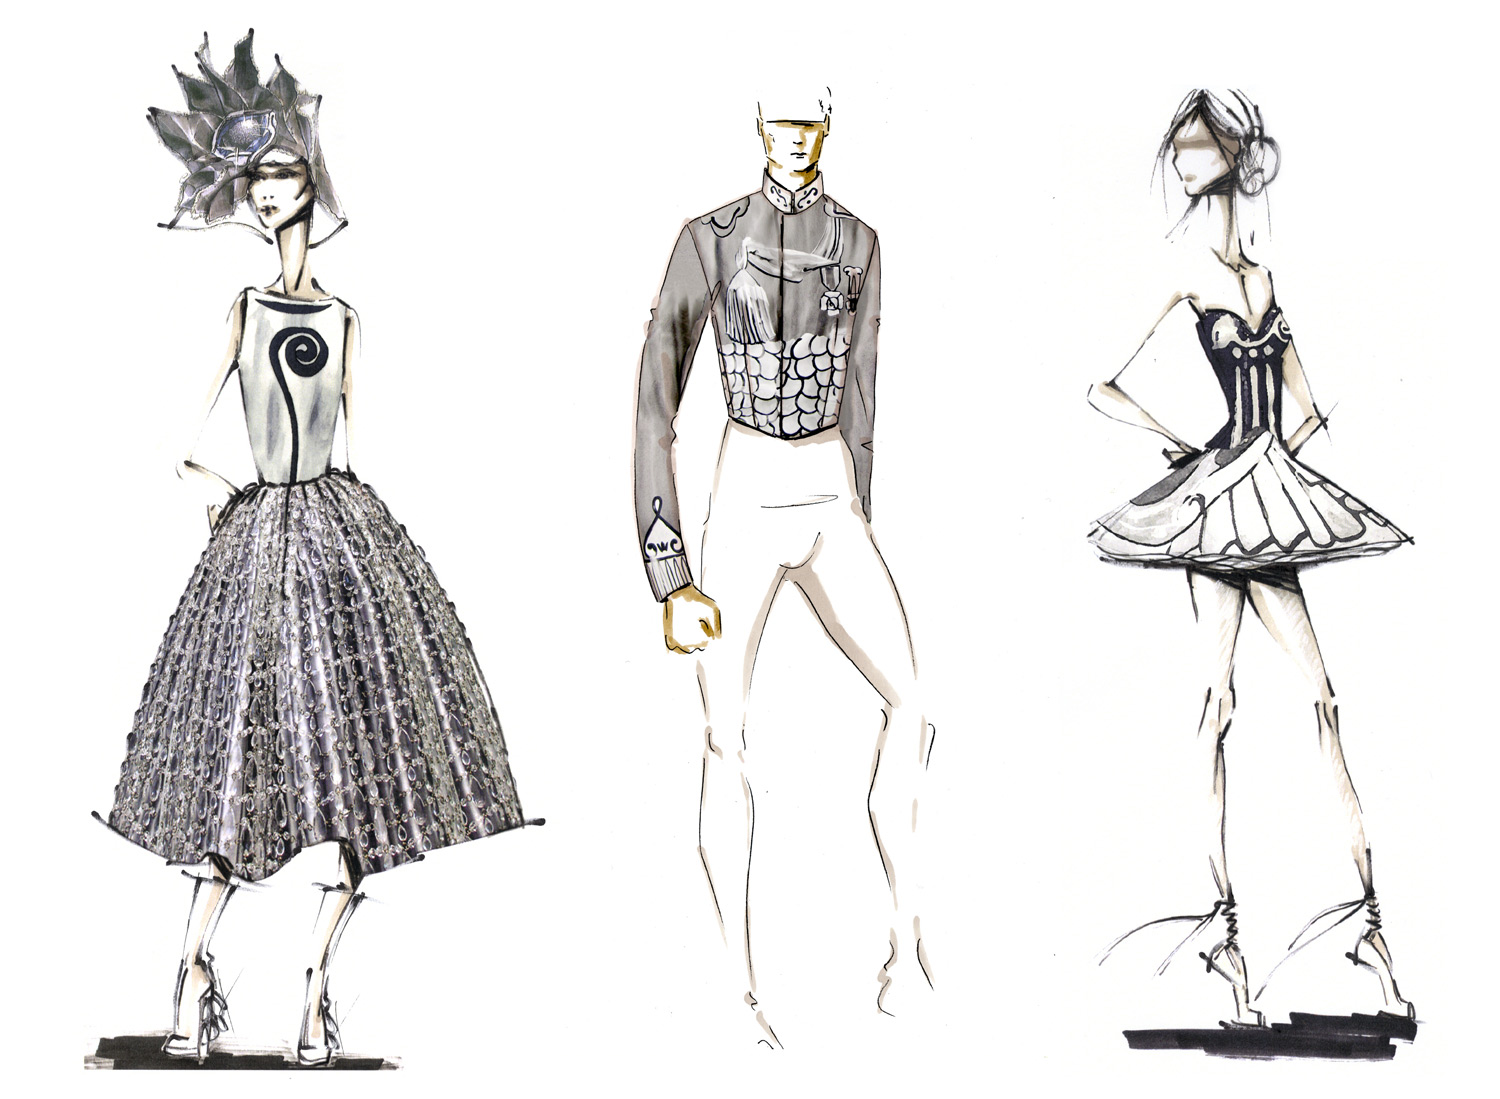 File:Prada Sketch.jpg